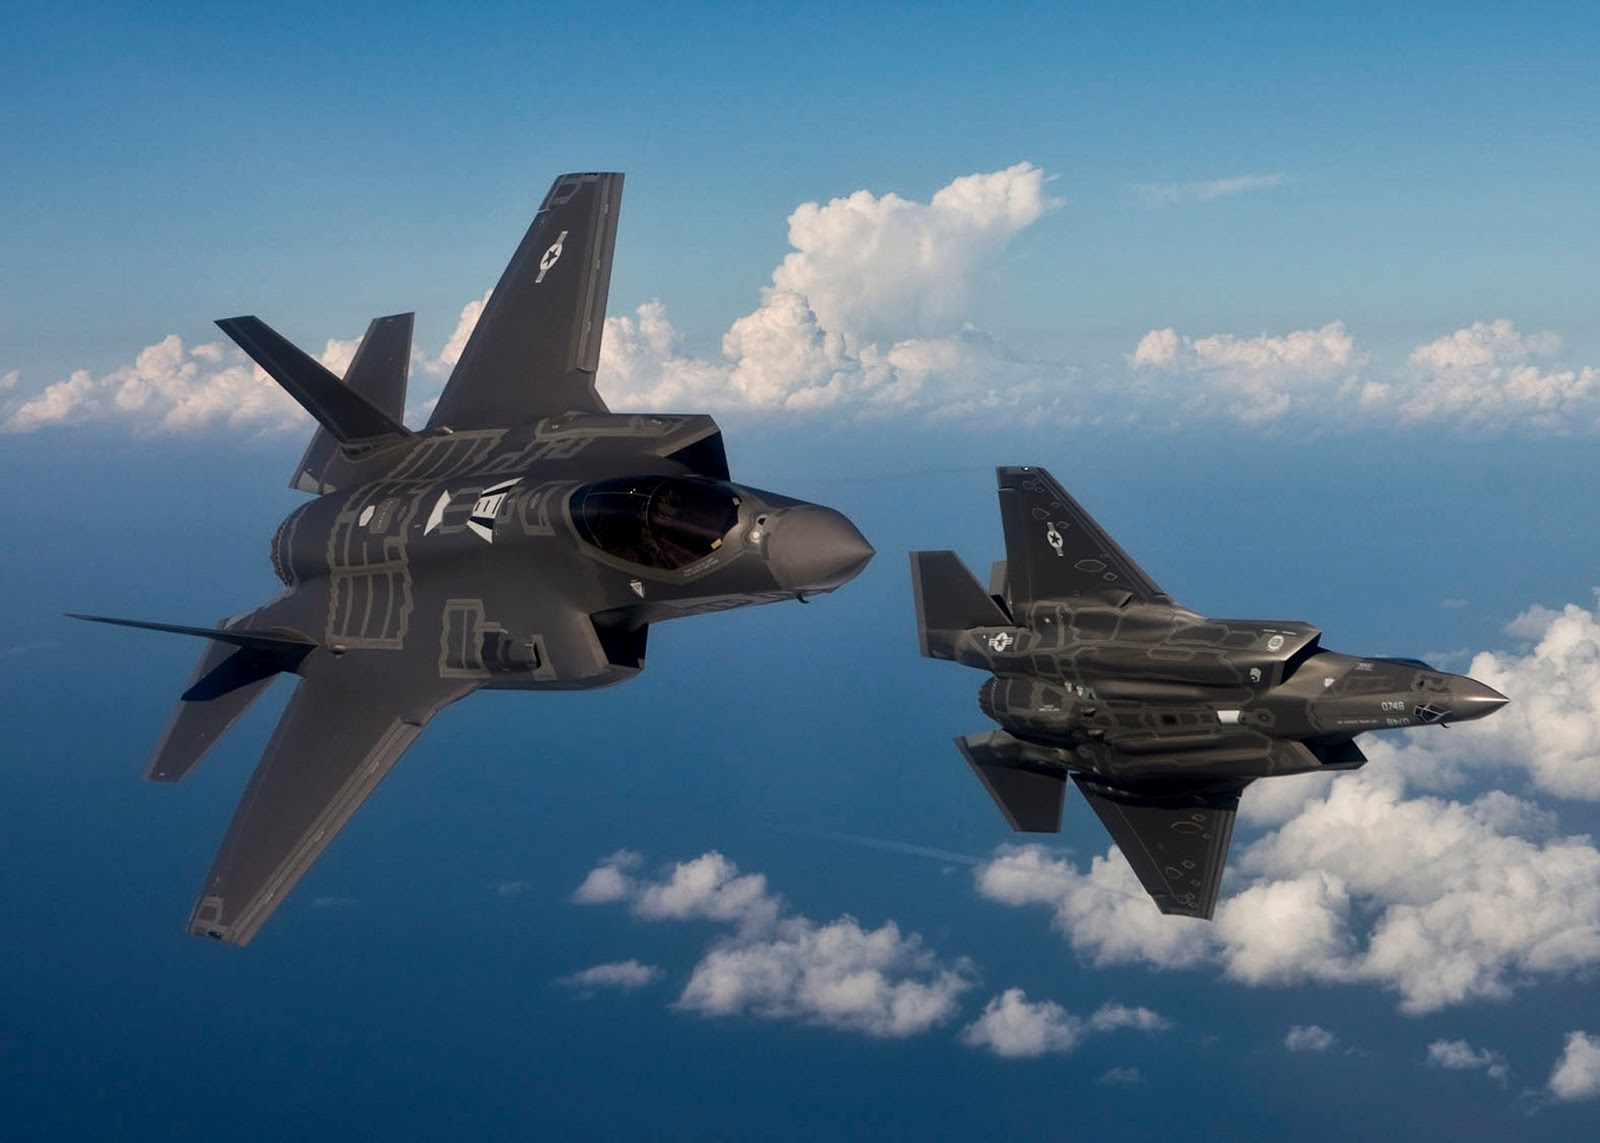 ภาพถ่าย Lockheed Martin · F 35 Lightning II on 35 news